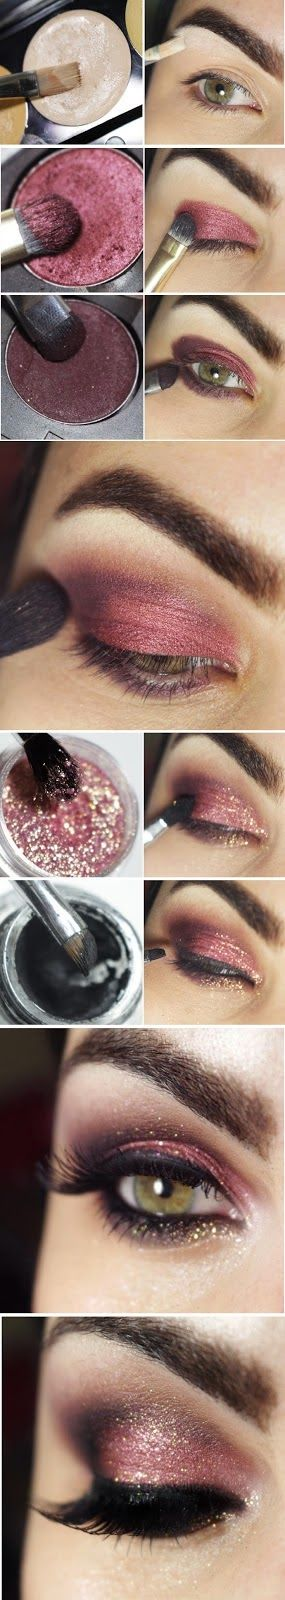 Beautiful look with this Eyeshadow technique